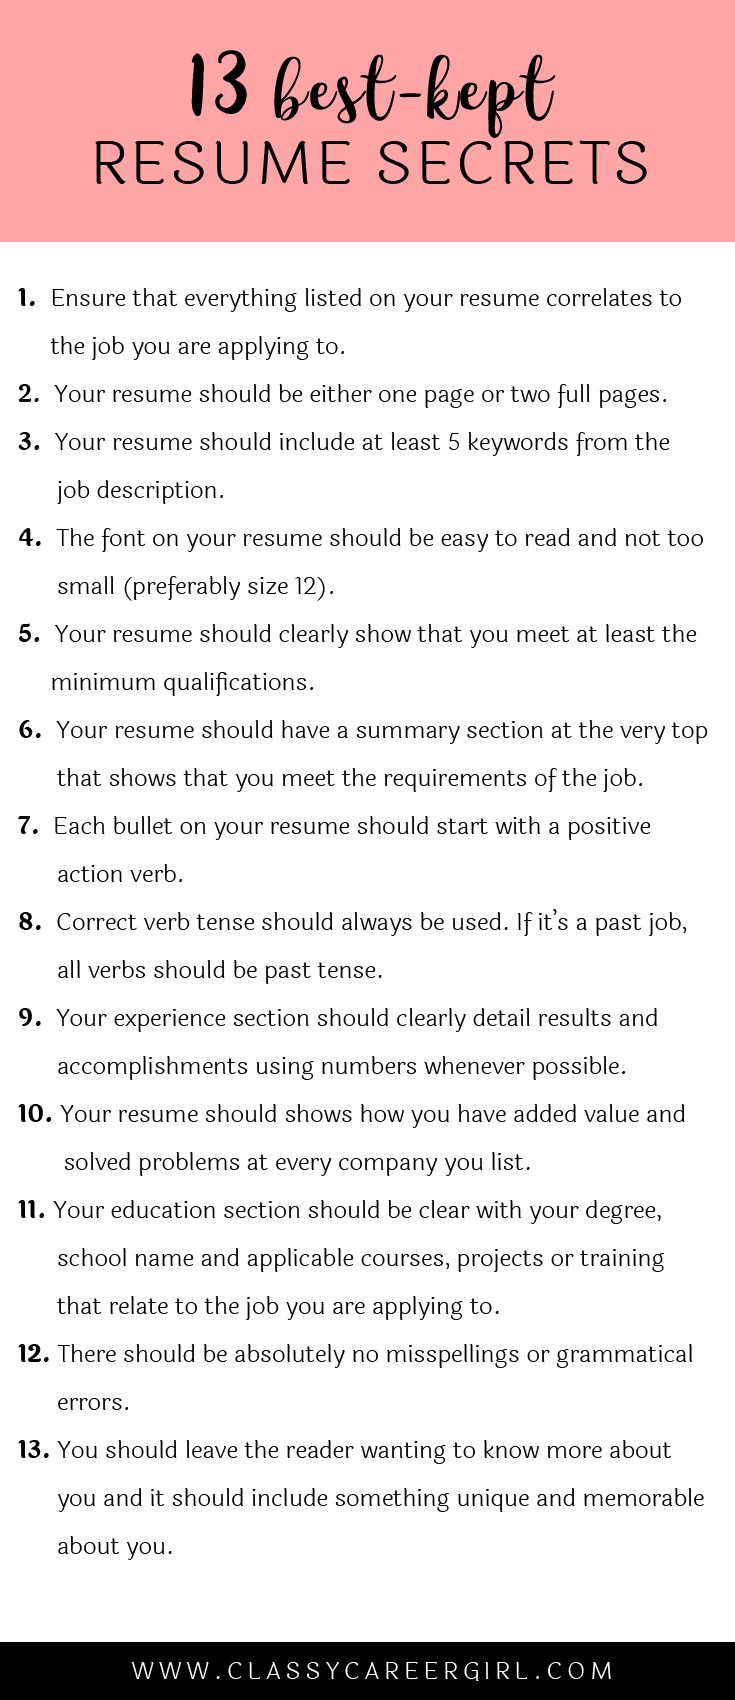 Opposenewapstandardsus  Scenic  Ideas About Resume On Pinterest  Cv Format Resume Cv And  With Fair Some Hiring Managers Will Toss Your Resume Out If You Dont Know These  With Awesome Resume Bullet Points Examples Also Resume On Microsoft Word In Addition Communication Resume Examples And Follow Up Letter After Resume As Well As Skills List Resume Additionally Resume Skills And Abilities Example From Pinterestcom With Opposenewapstandardsus  Fair  Ideas About Resume On Pinterest  Cv Format Resume Cv And  With Awesome Some Hiring Managers Will Toss Your Resume Out If You Dont Know These  And Scenic Resume Bullet Points Examples Also Resume On Microsoft Word In Addition Communication Resume Examples From Pinterestcom